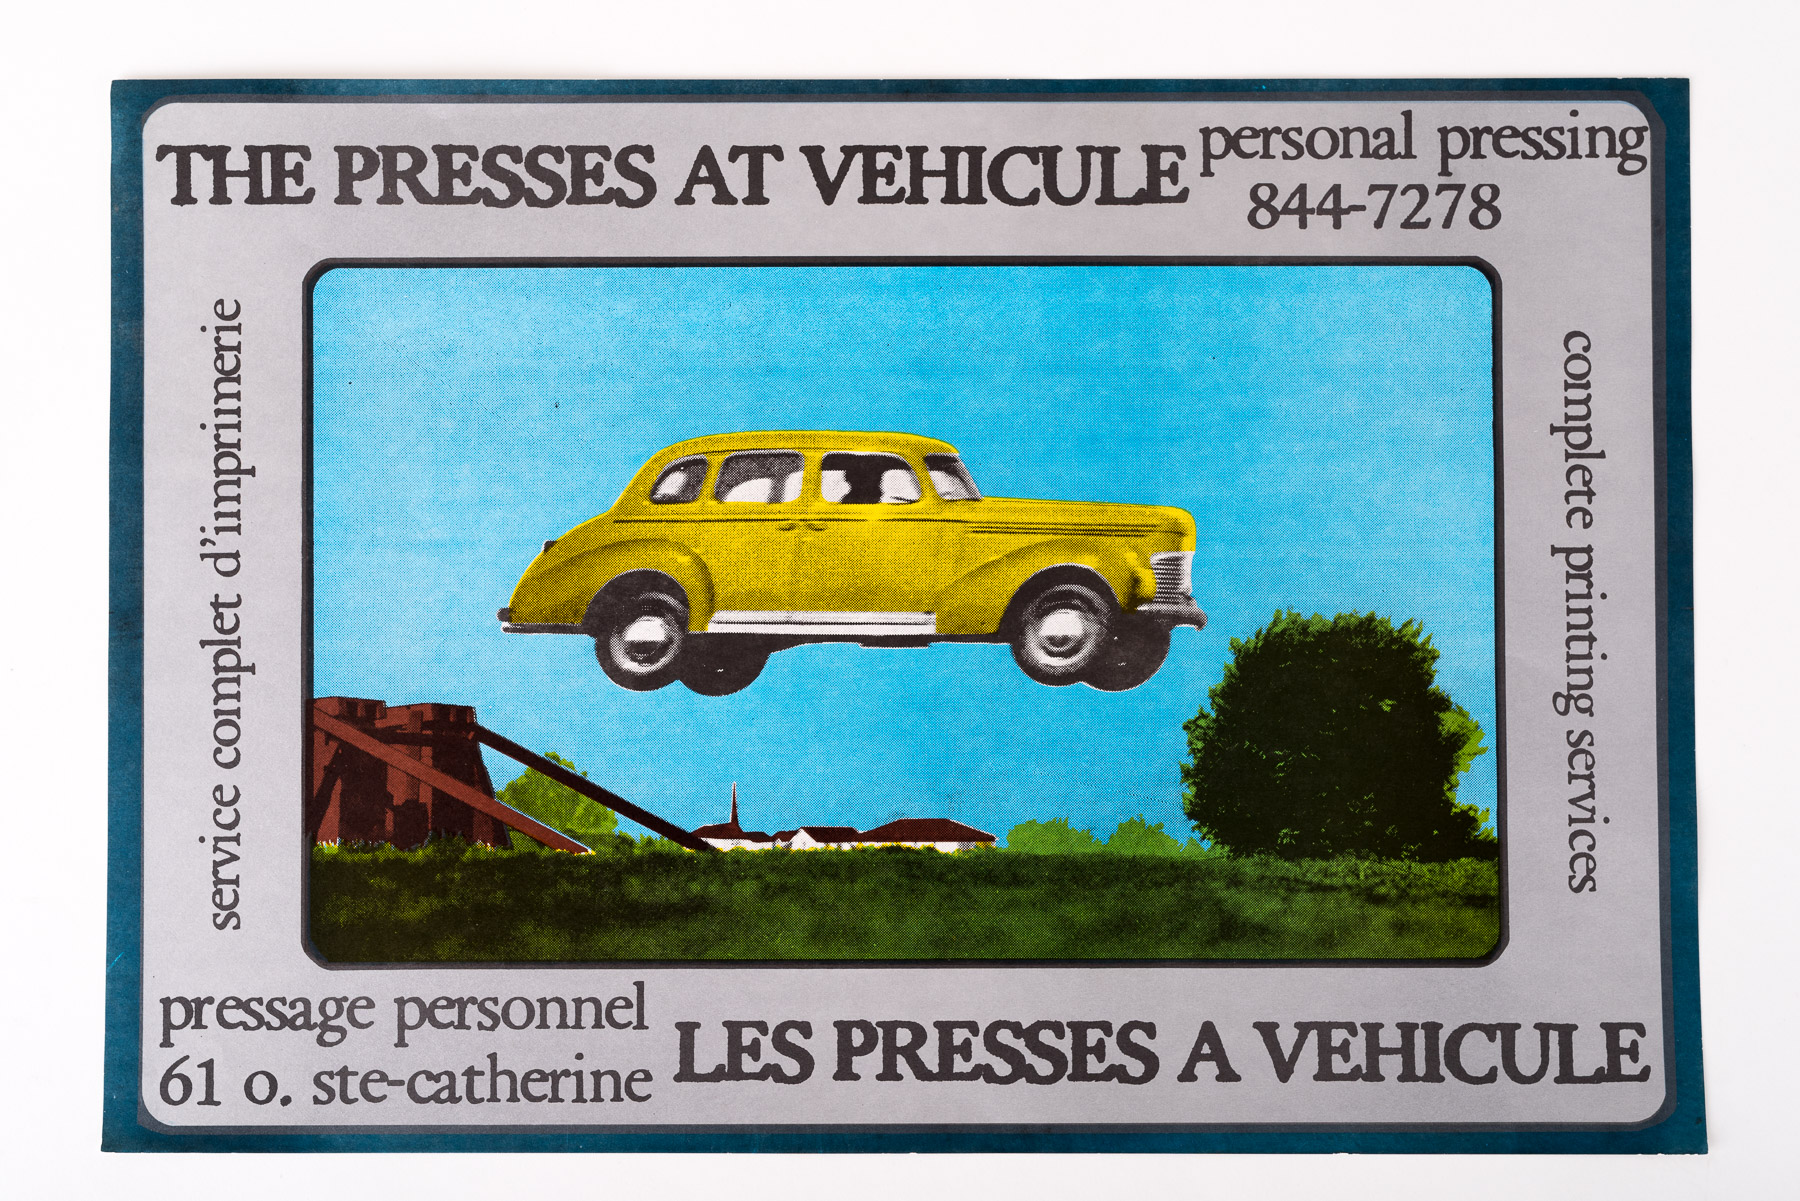 The Presses at Vehicule poster